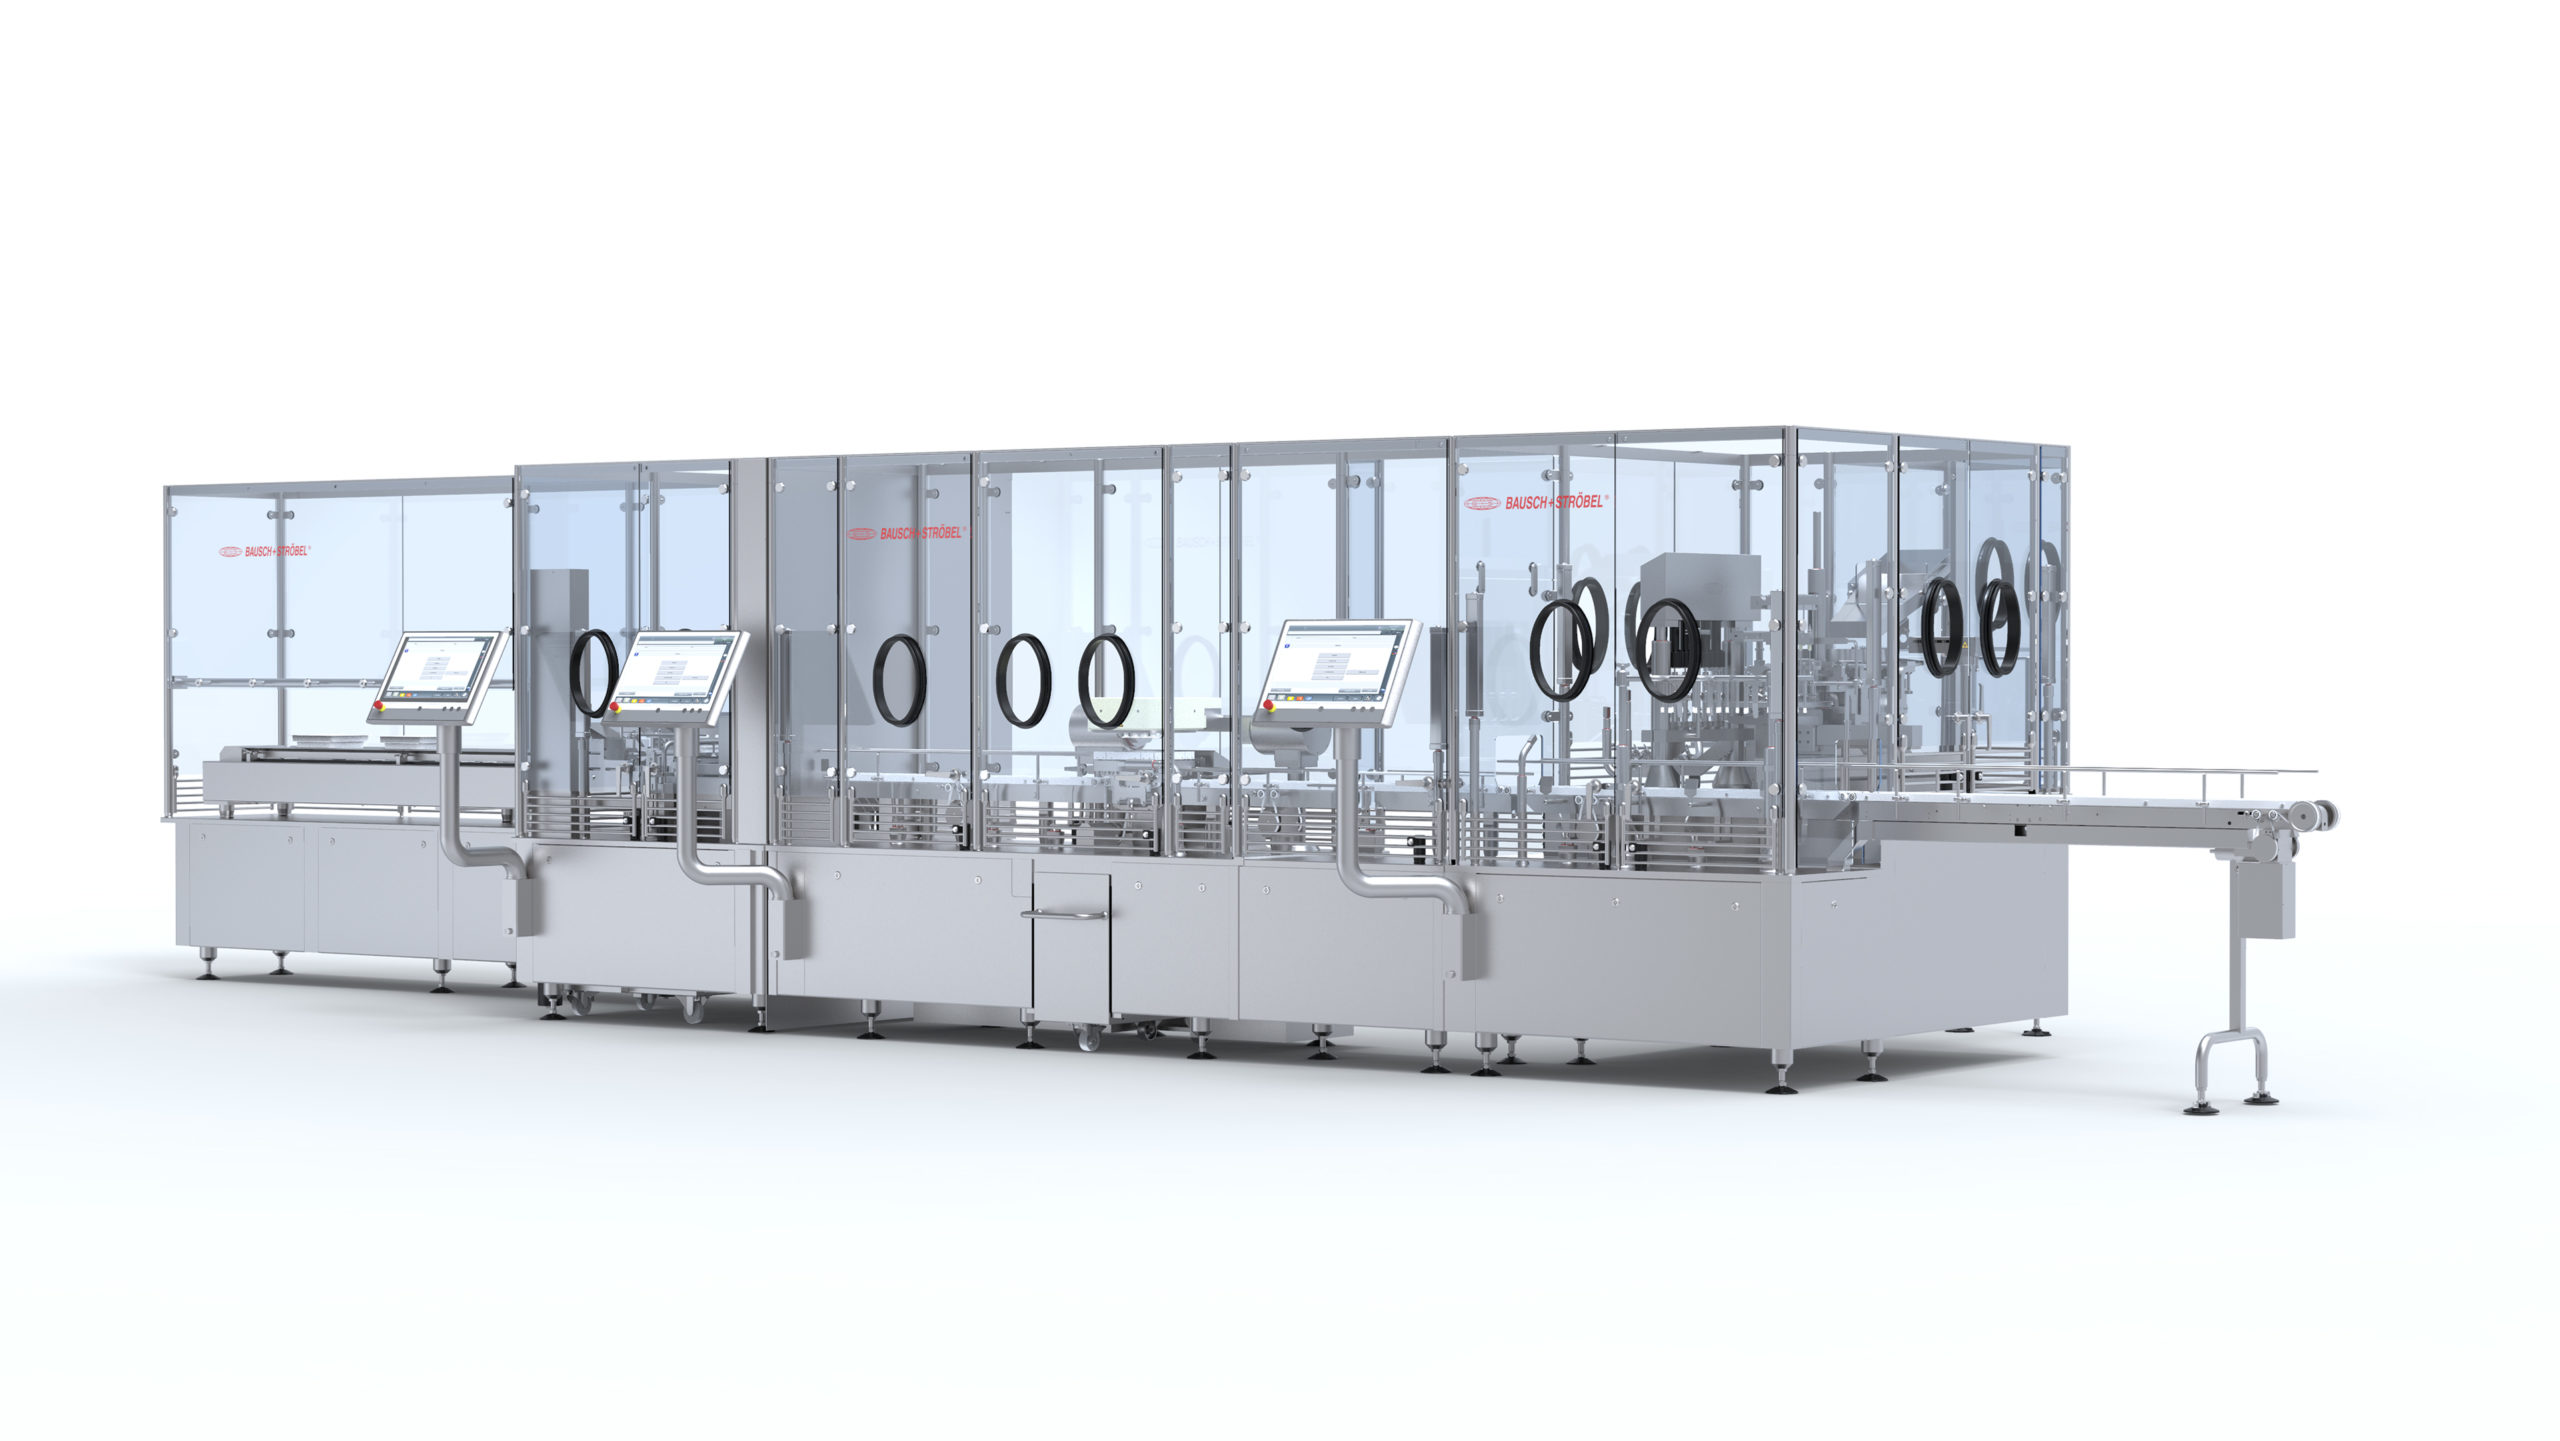 Litech - supplier to the pharmaceutical industry for the brand Bausch + Ströbel